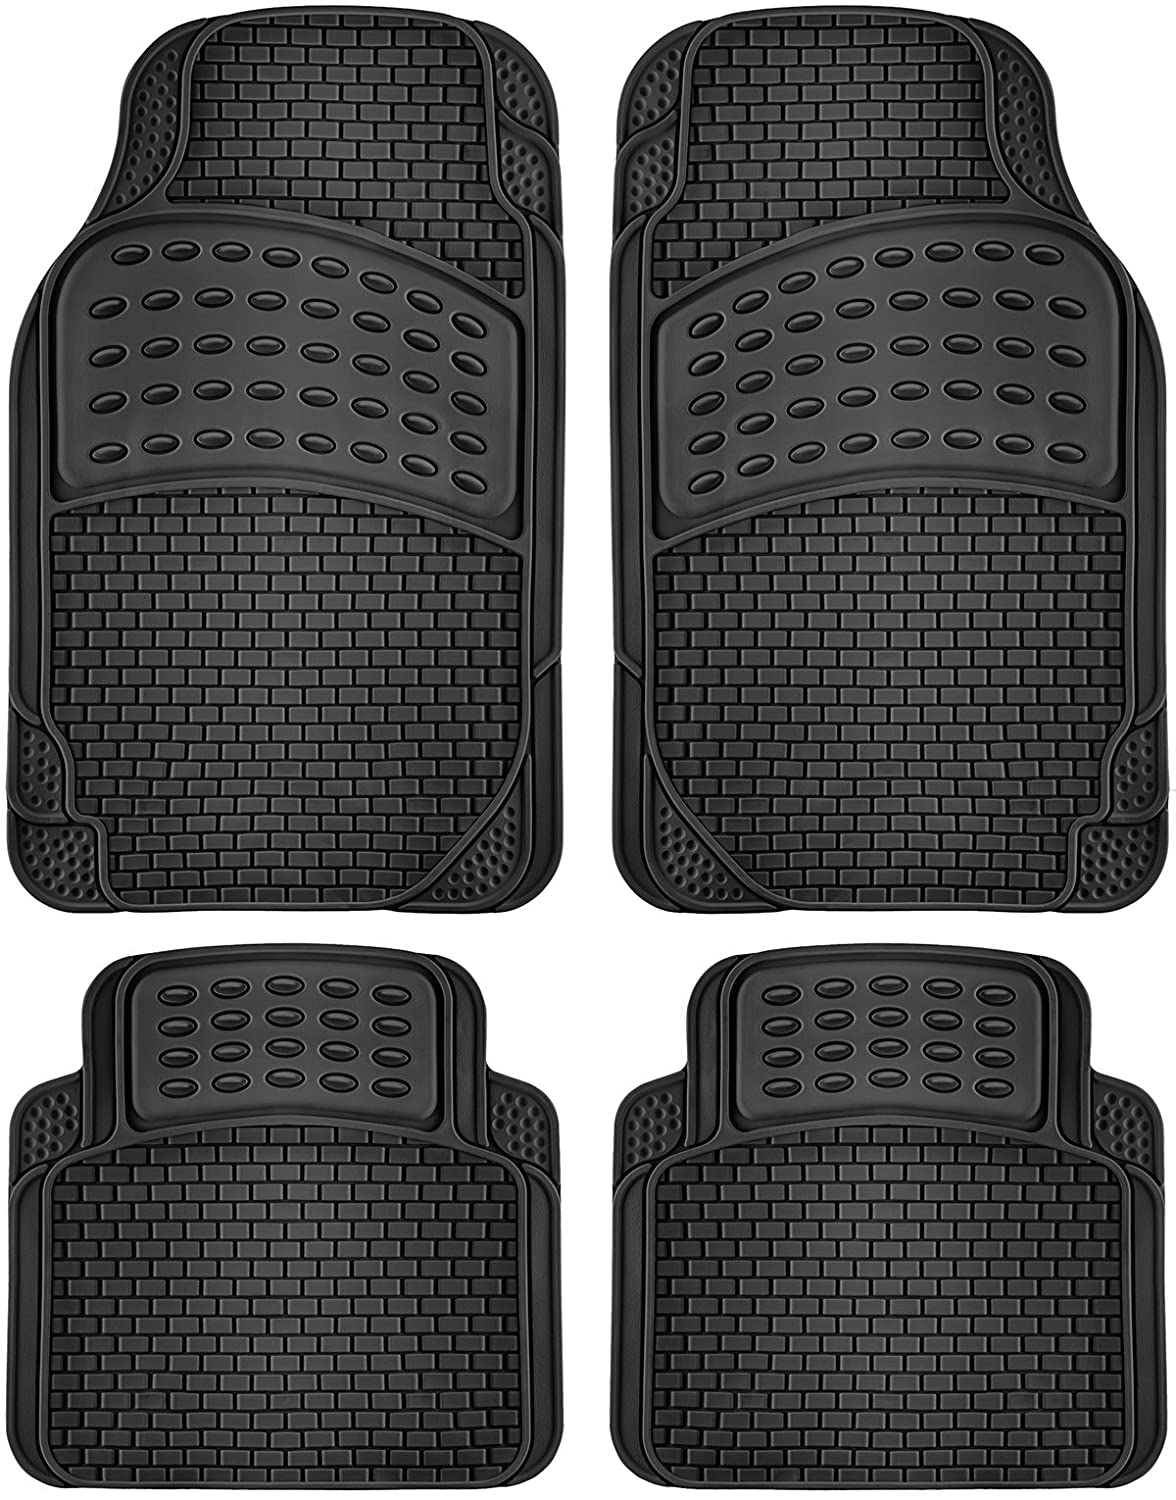 Rubber floor mats cheap - Oxgord Fmpv01a Bk Front Rear Driver Passenger Seat Ridged Heavy Duty Rubber Floor Mats For Cars Suvs Vans Trucks Black